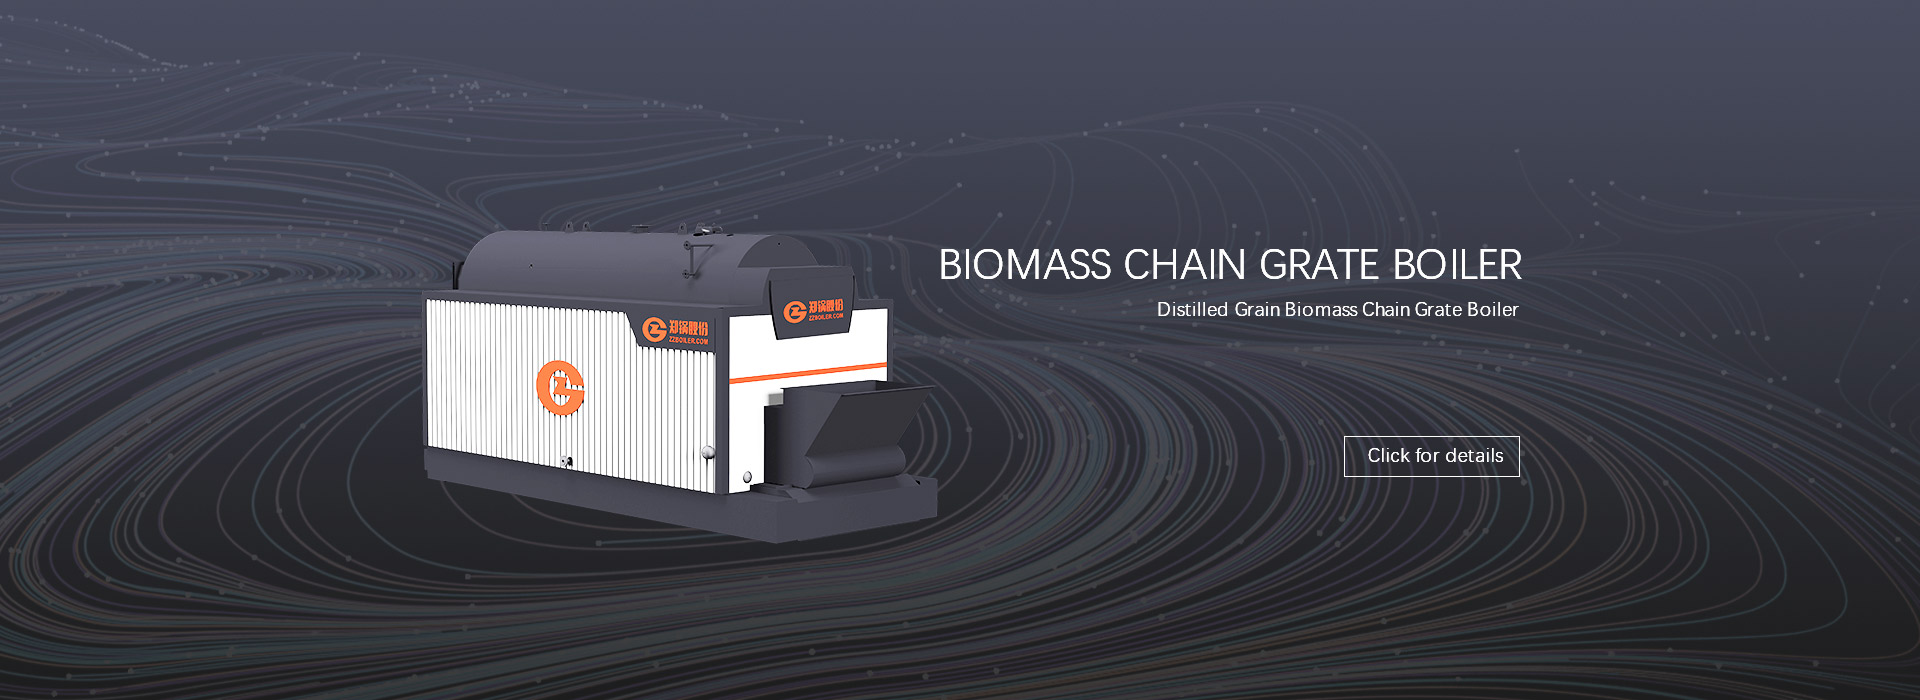 Distilled Grain Biomass Chain Grate Boiler